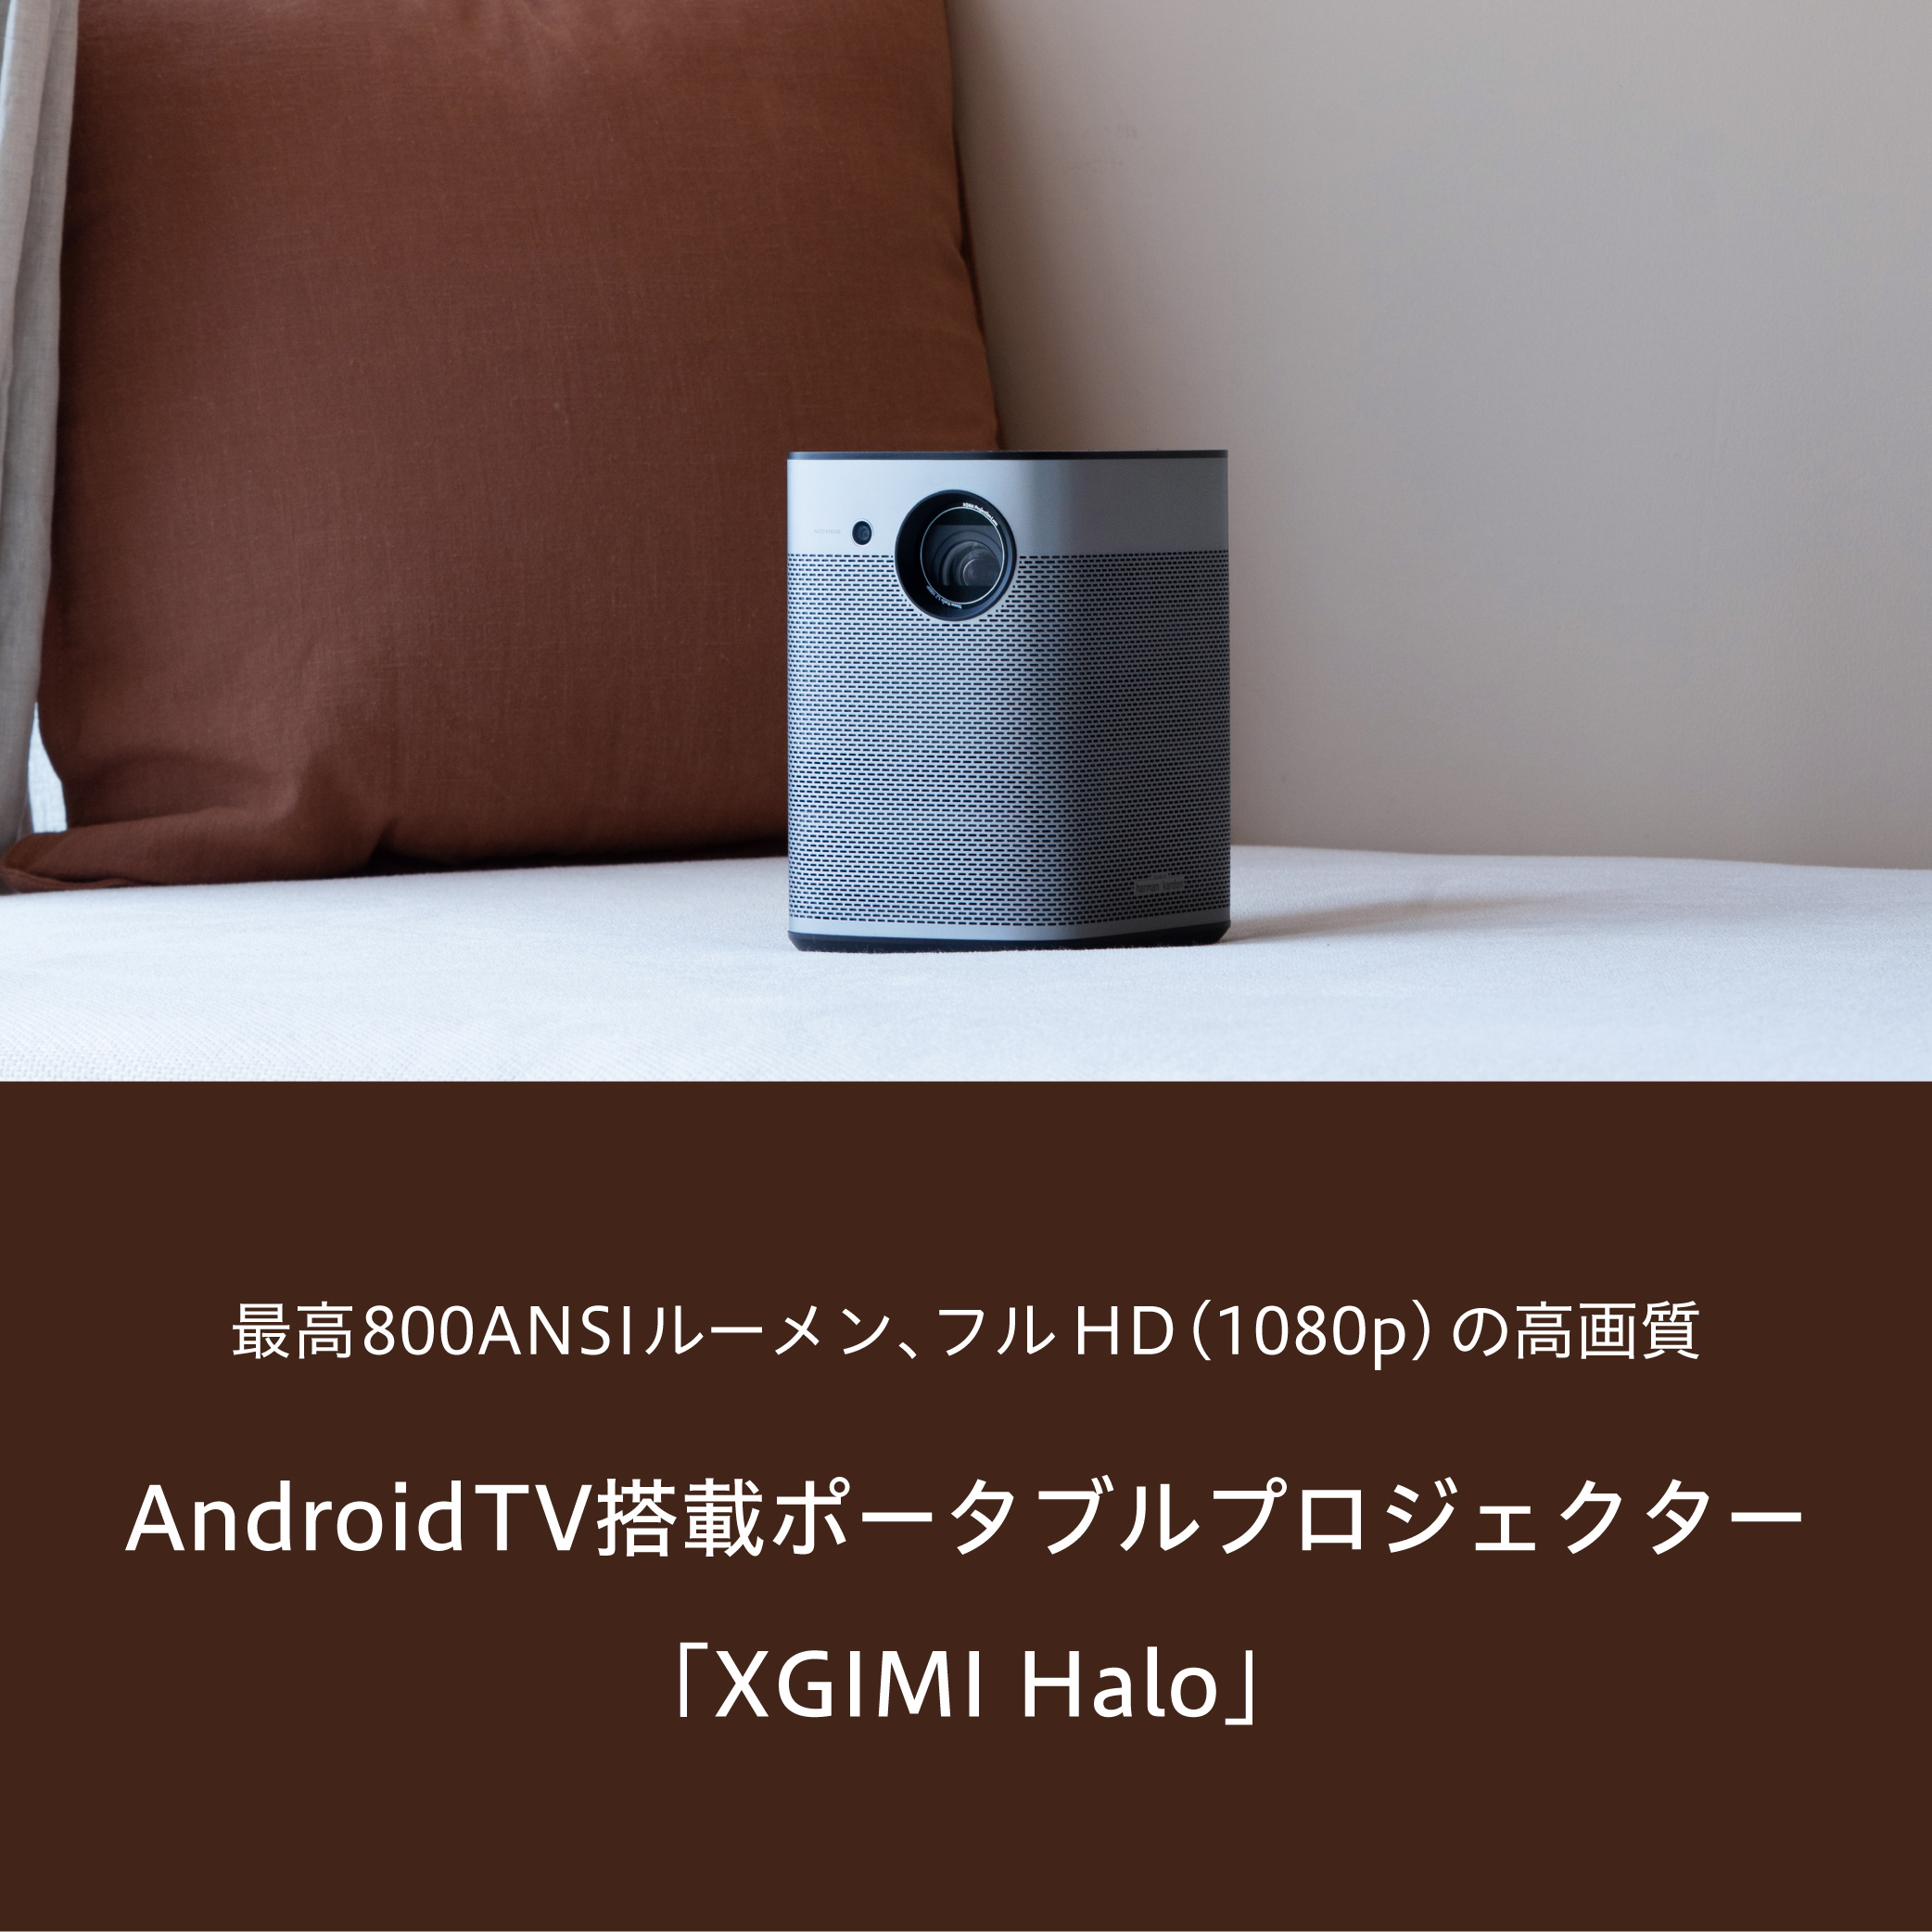 Android TV搭載のポータブルプロジェクター XGIMI Halo